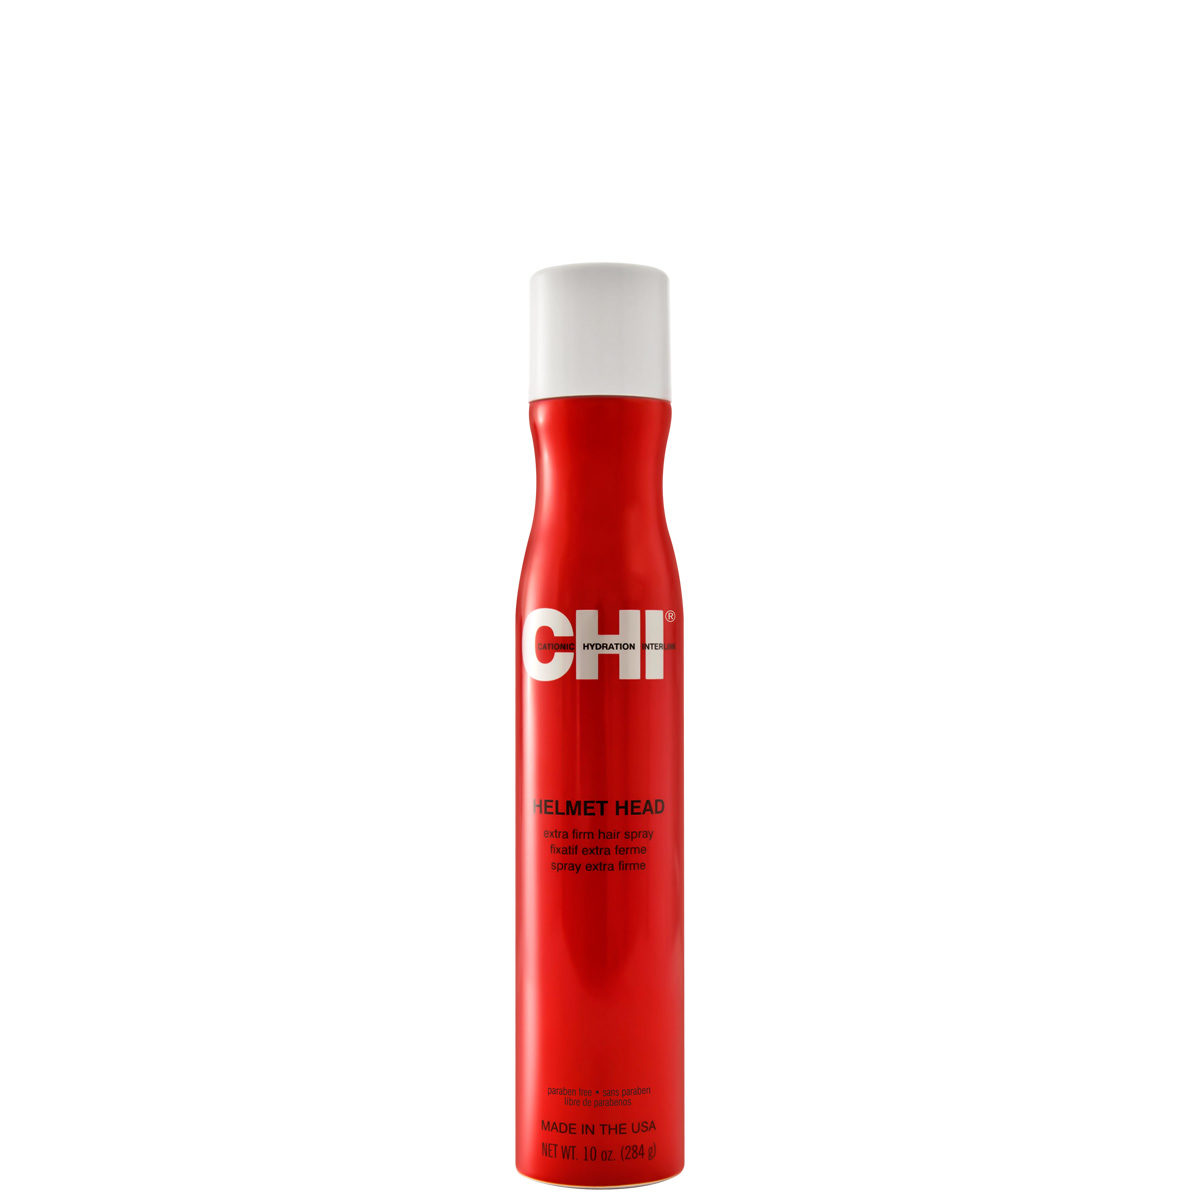 CHI Helmet Head Hair Spray CHI Haircare